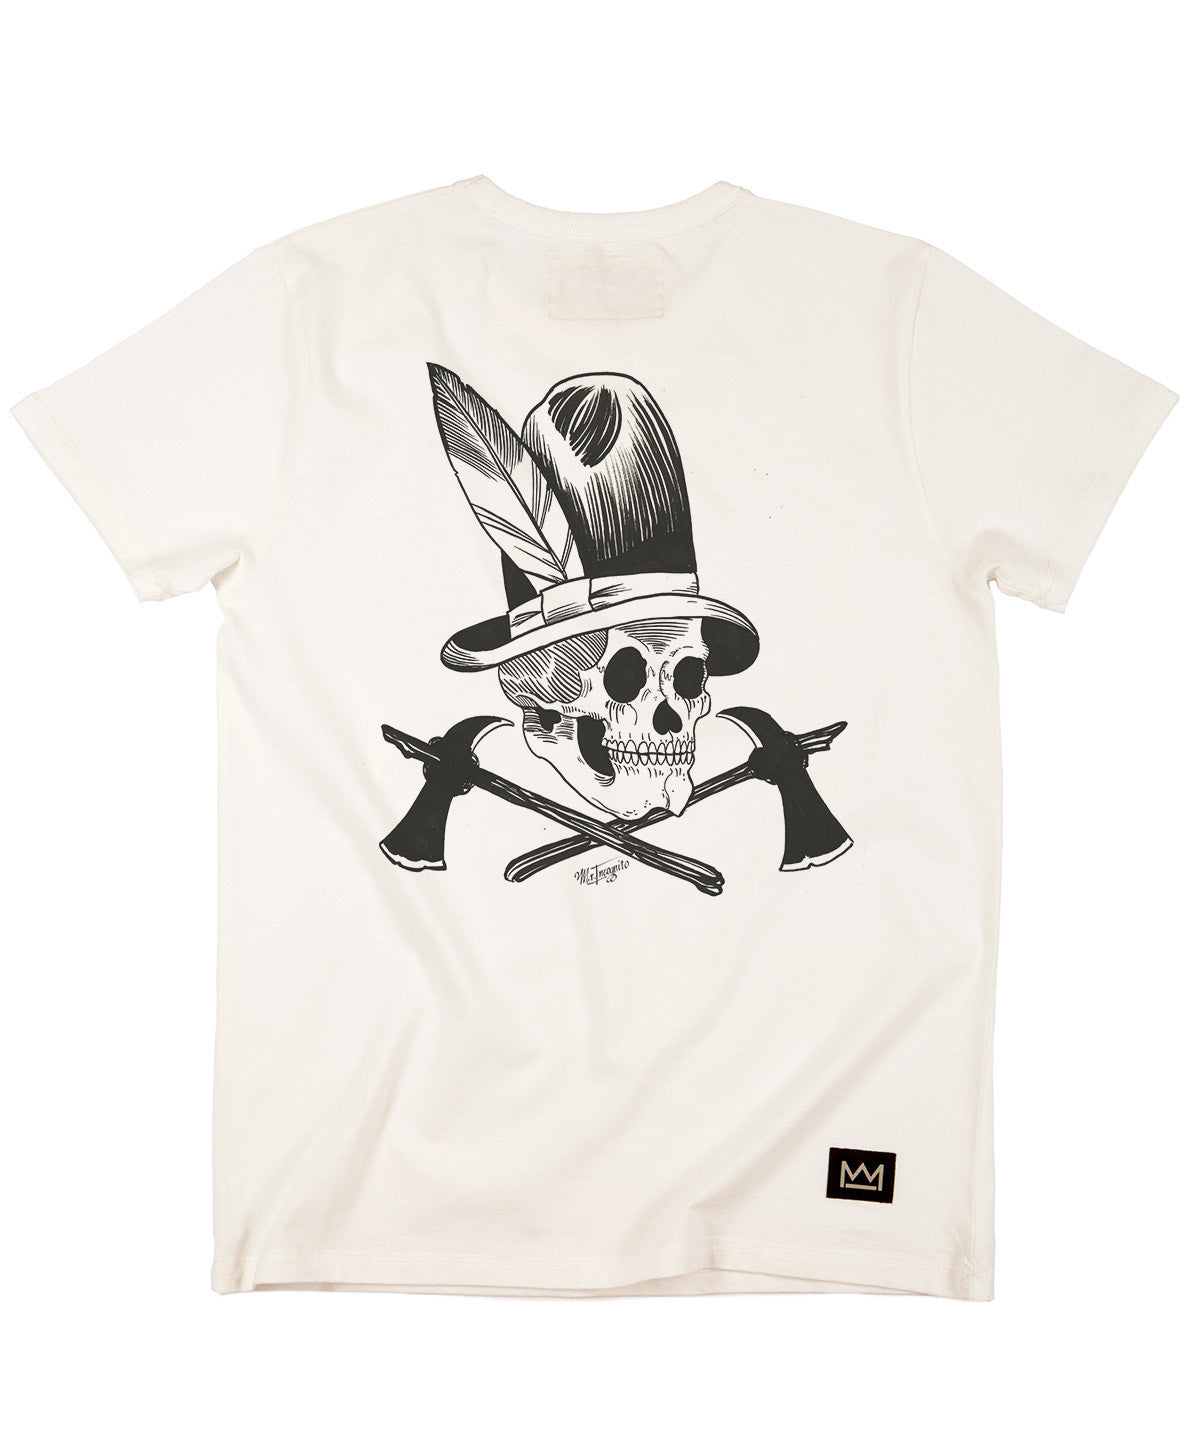 Mr Incognito 'Big Tom' T-shirt White